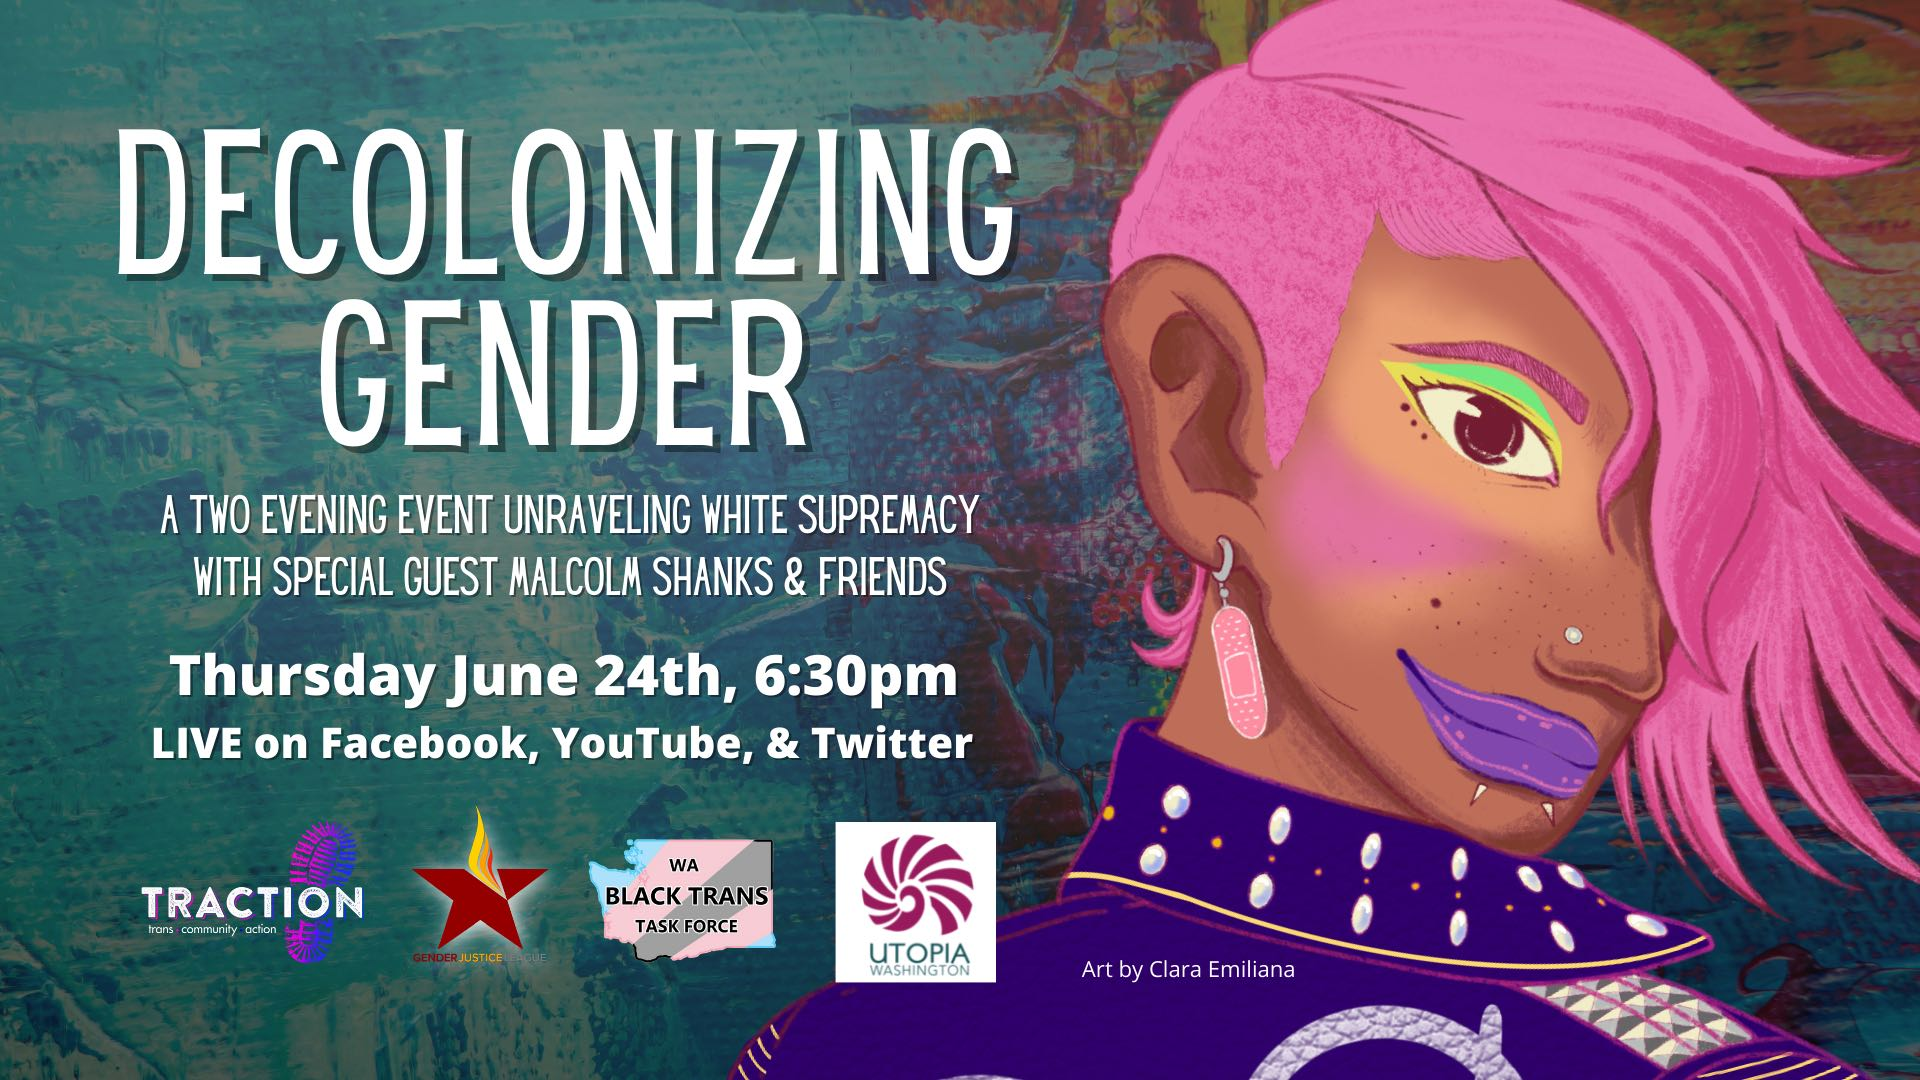 Decolonizing Gender with Malcolm Shanks: Part 1 of 2